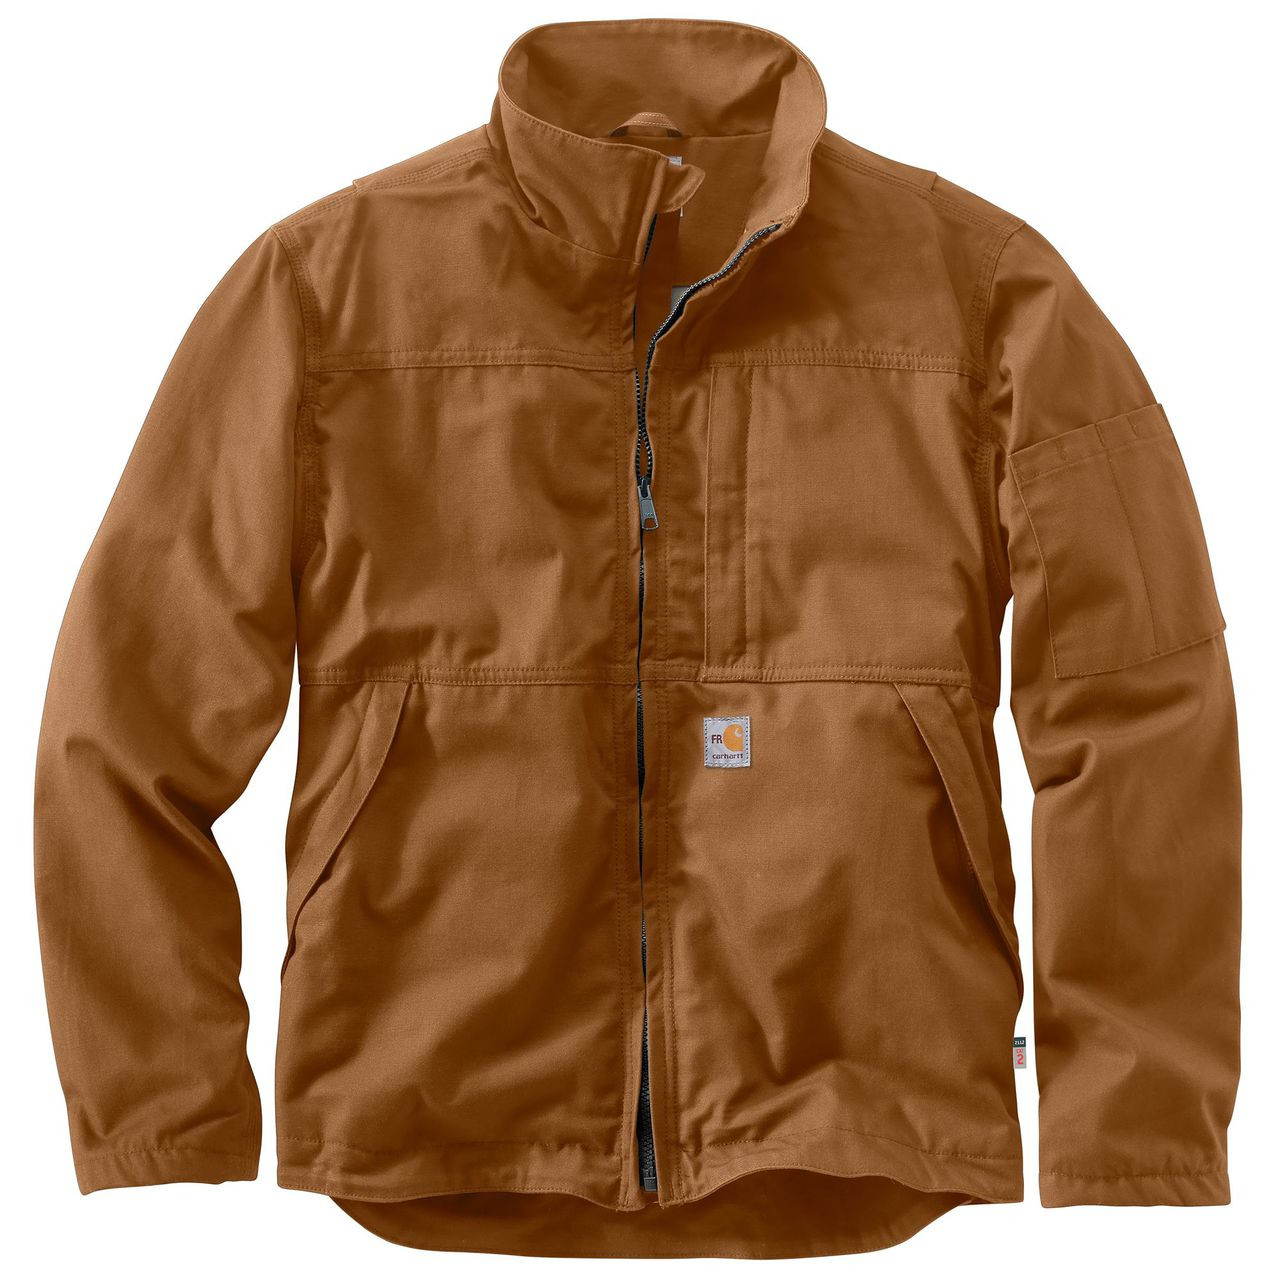 Flame Resistant Full Swing Quick Duck Jacket